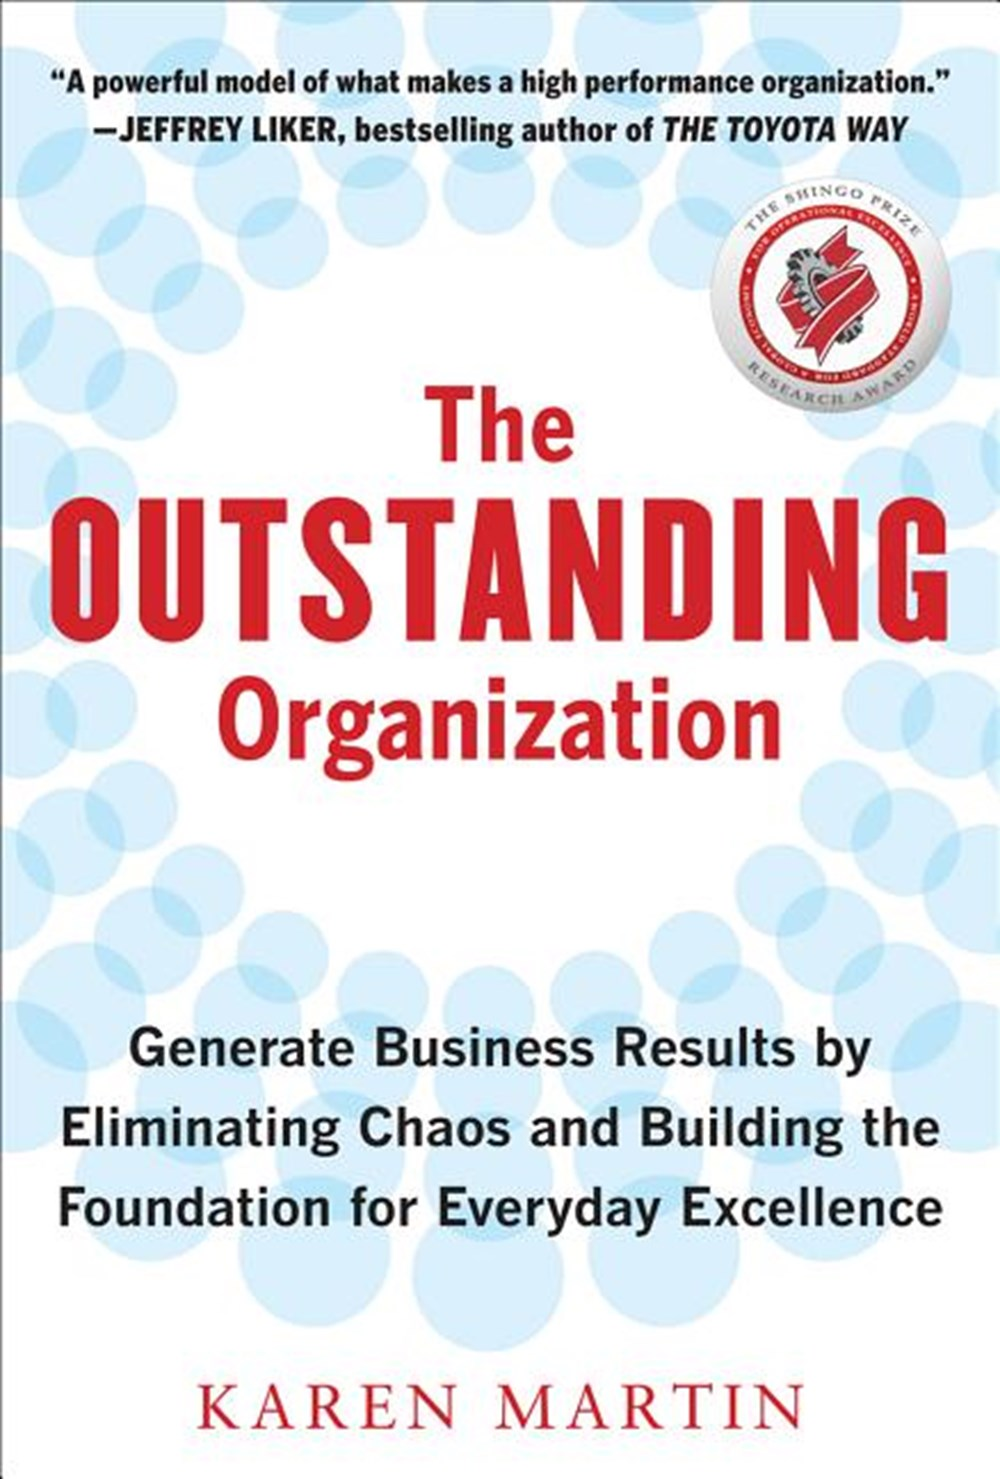 Outstanding Organization Generate Business Results by Eliminating Chaos and Building the Foundation